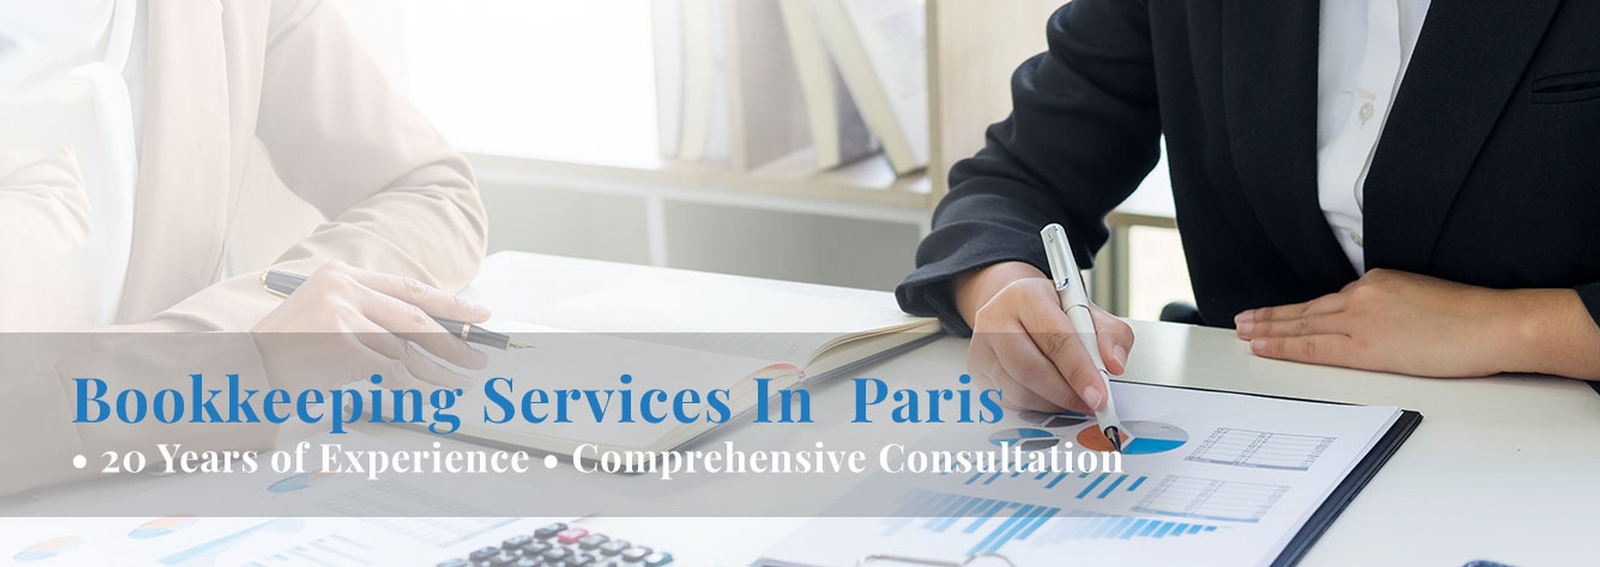 Accounting Services Paris